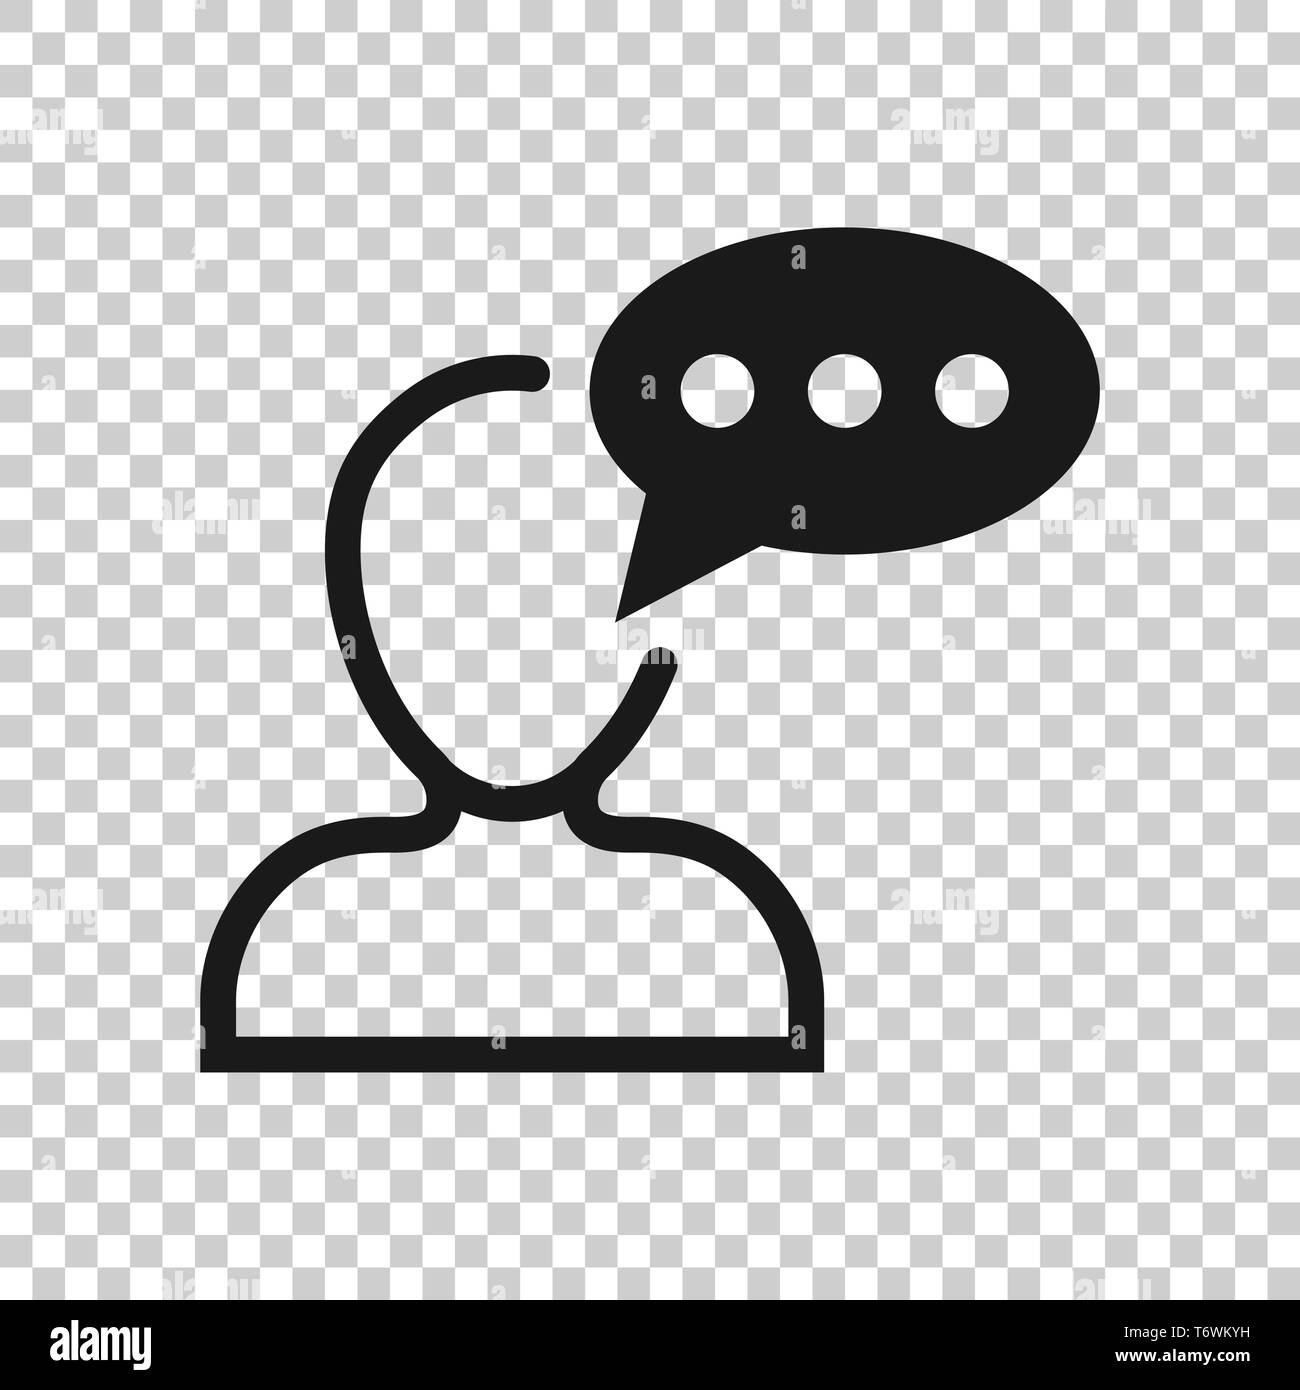 Man head mind thinking icon in transparent style. Speech bubble with people vector illustration on isolated background. Contemplating dialog business  - Stock Vector